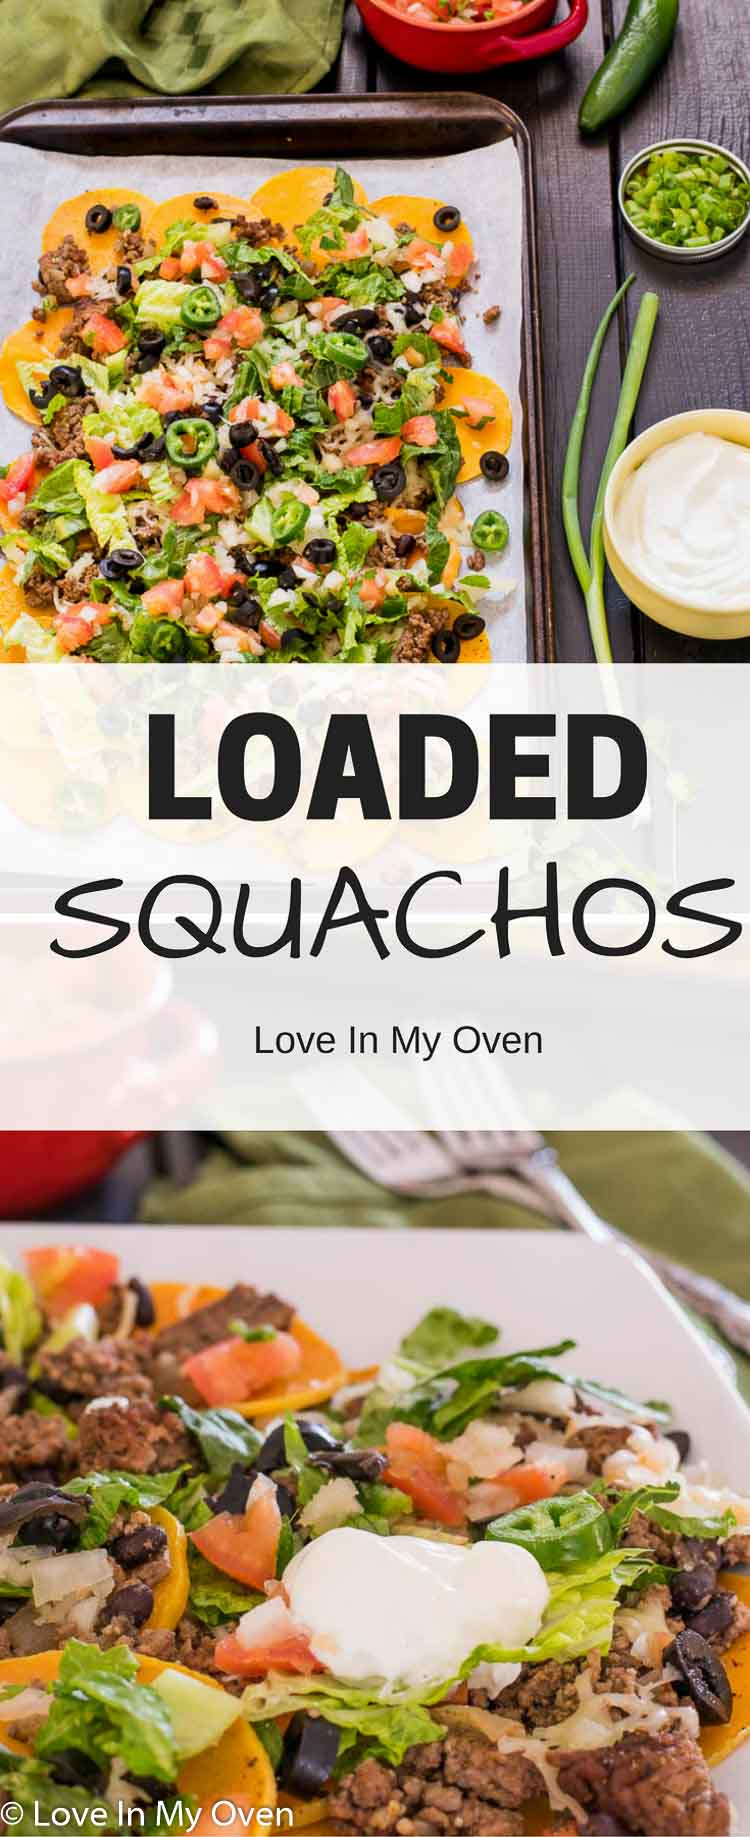 loaded squachos